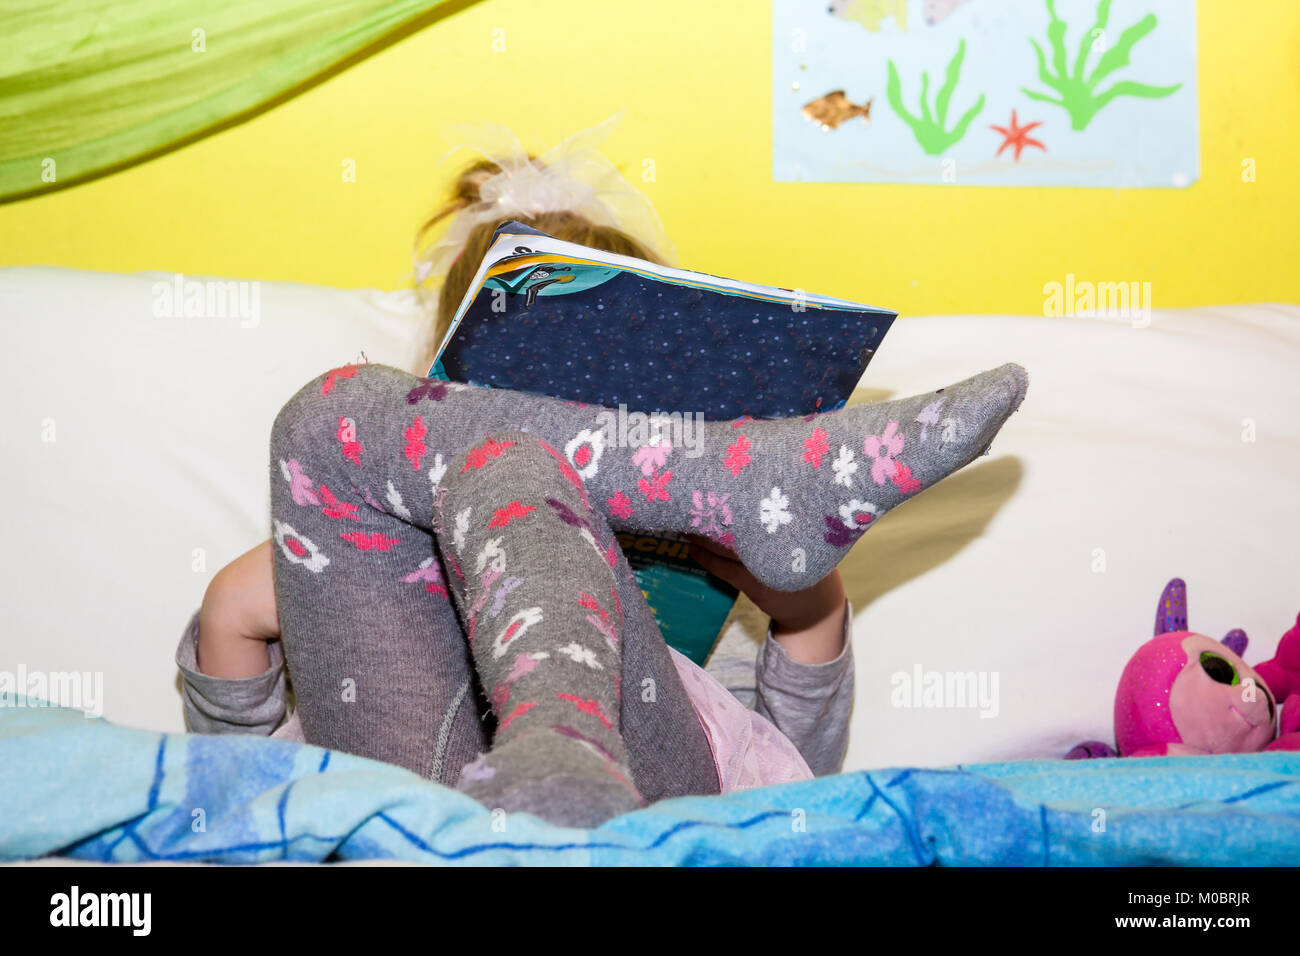 Little girl reading colourful book with pictures and text - Stock Image